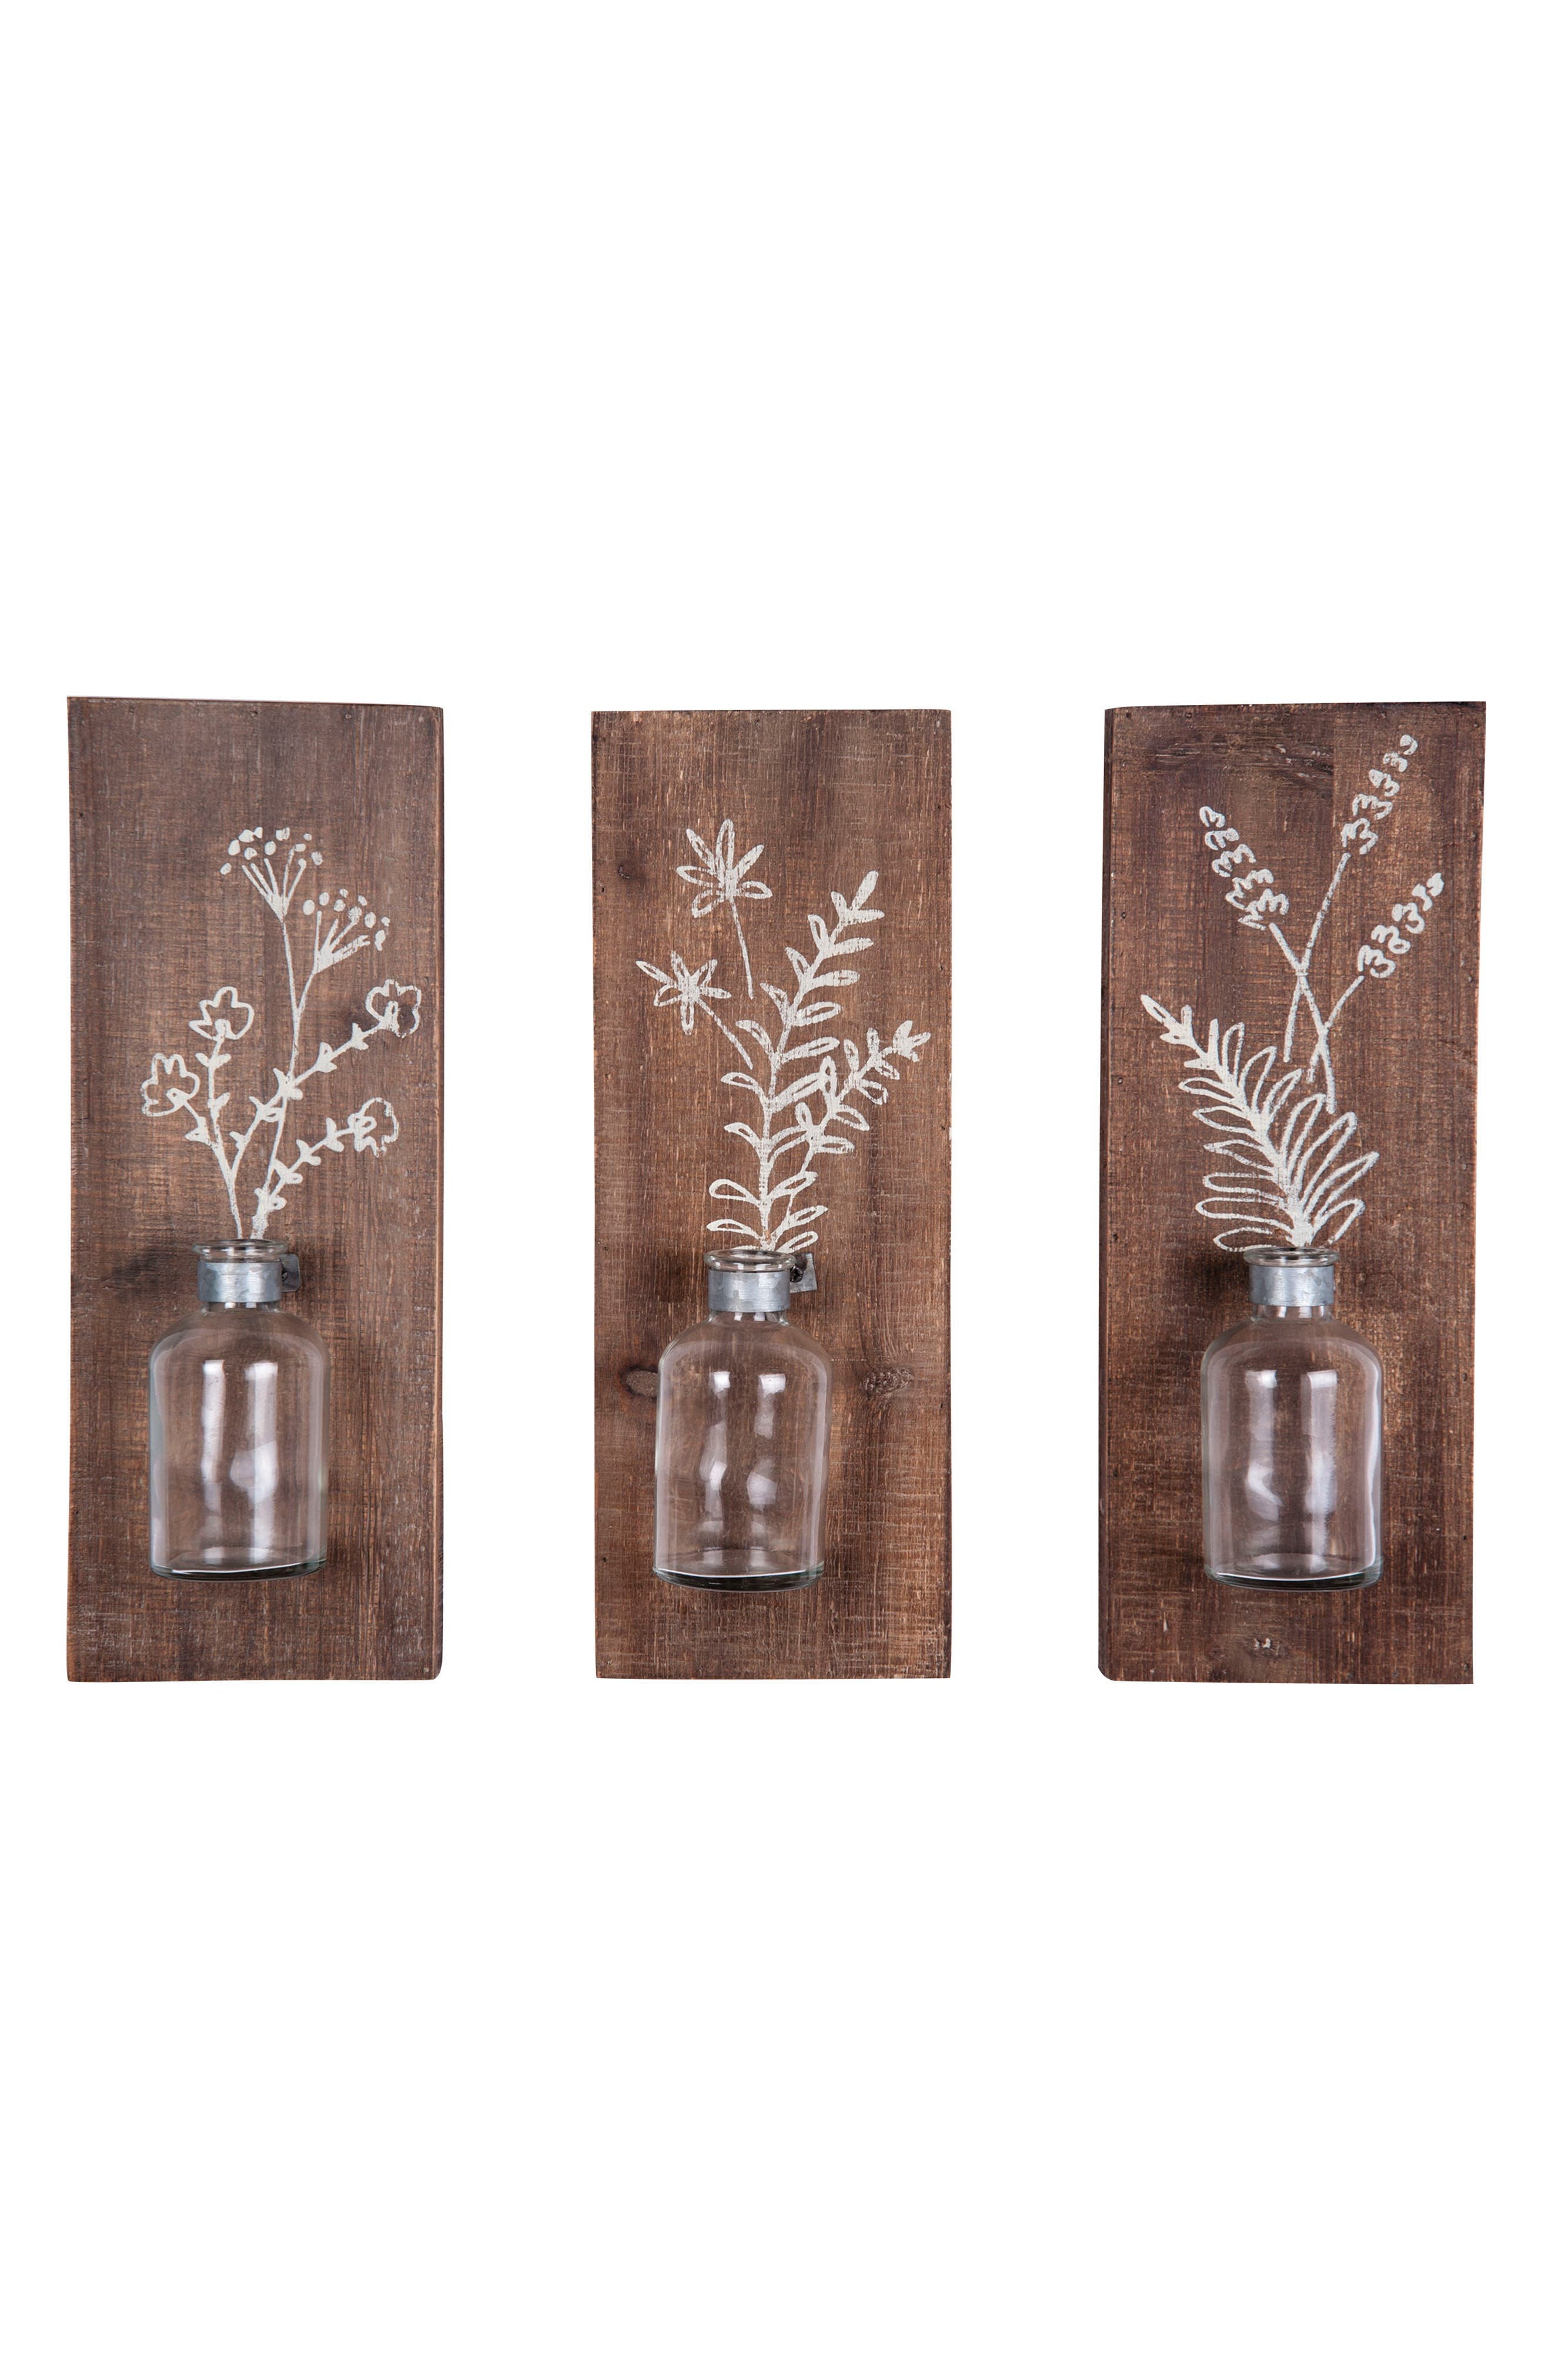 Fern Set of 3 Wall Vases,                             Main thumbnail 1, color,                             Wood/ Glass/ Metal